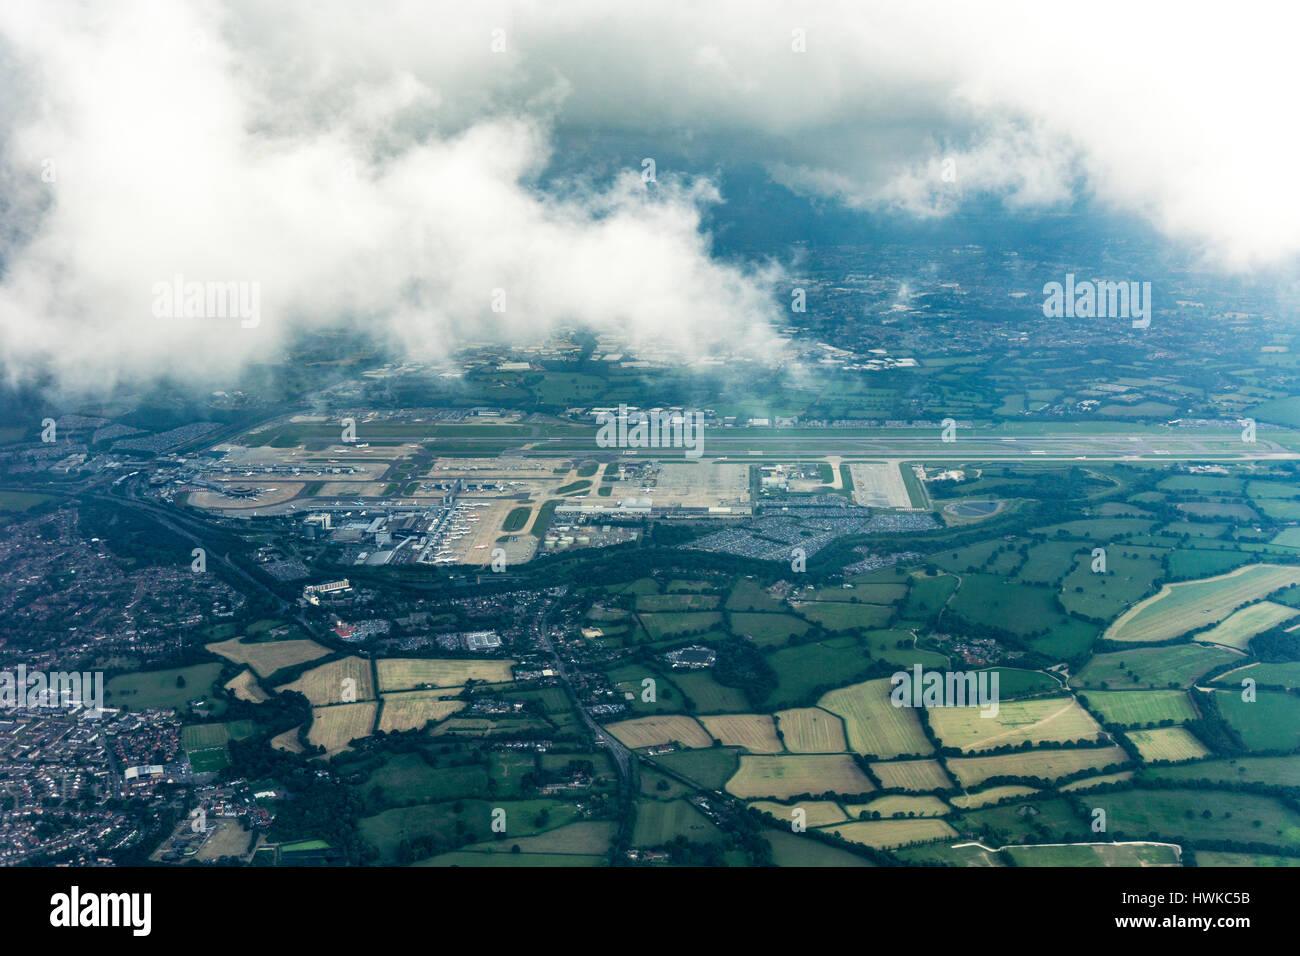 Aerial view of London Gatwick Airport, UK Stock Photo